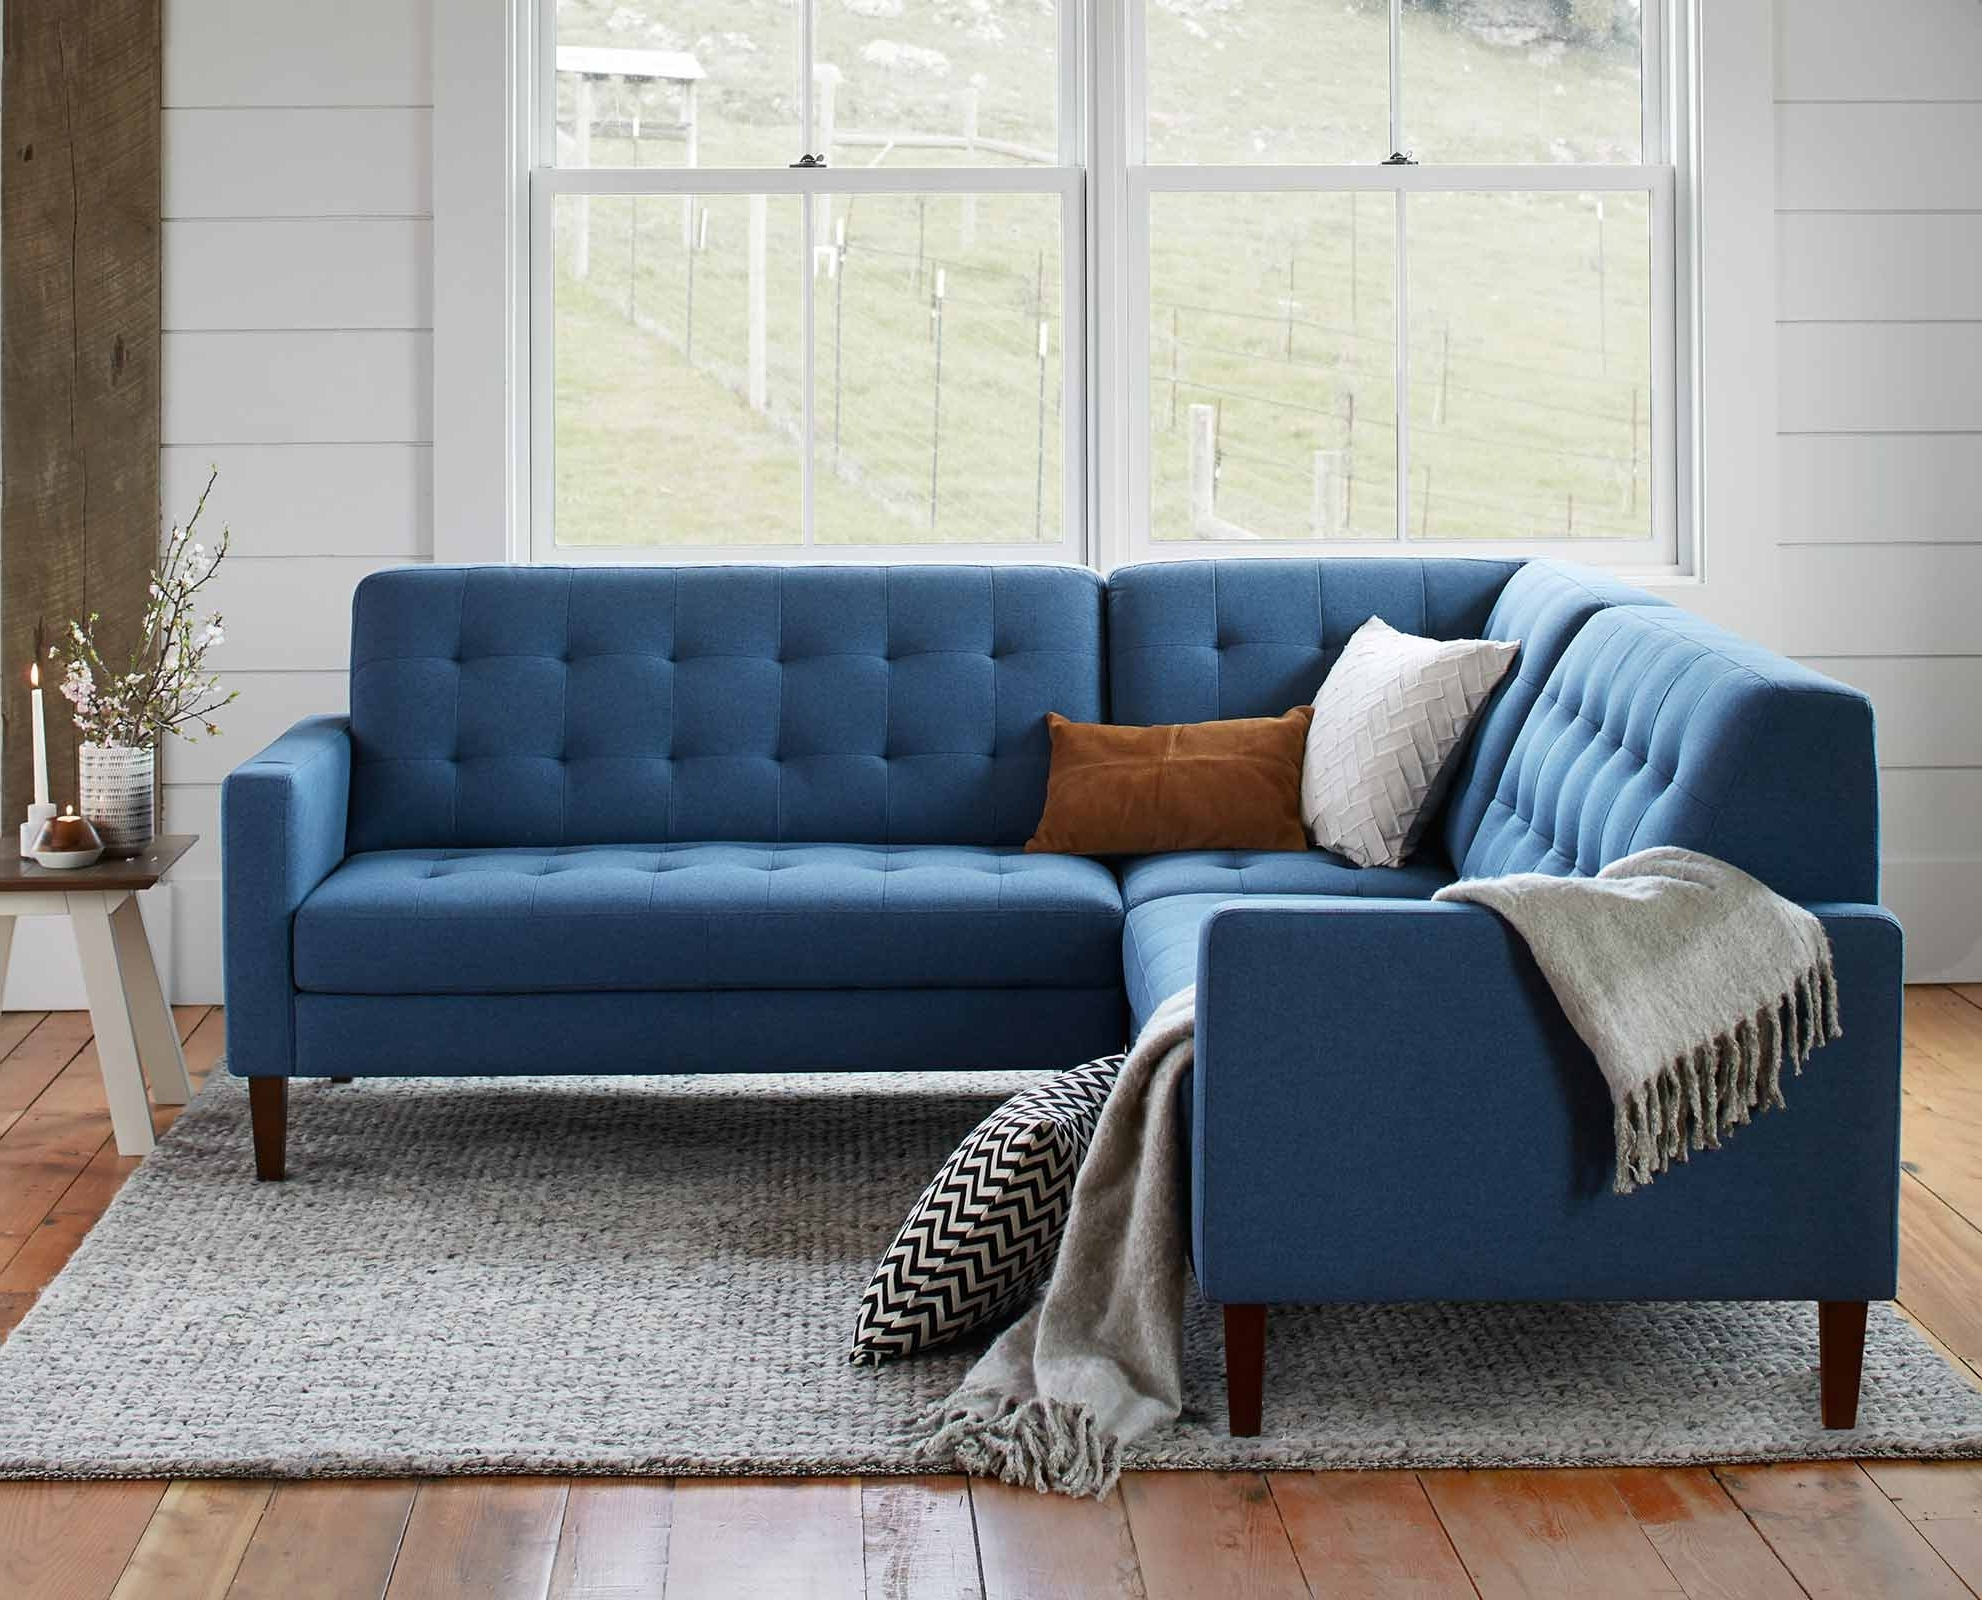 The Camilla Sectional From Scandinavian Designs – Adopt A Adopt A With Well Known Dania Sectional Sofas (View 13 of 15)